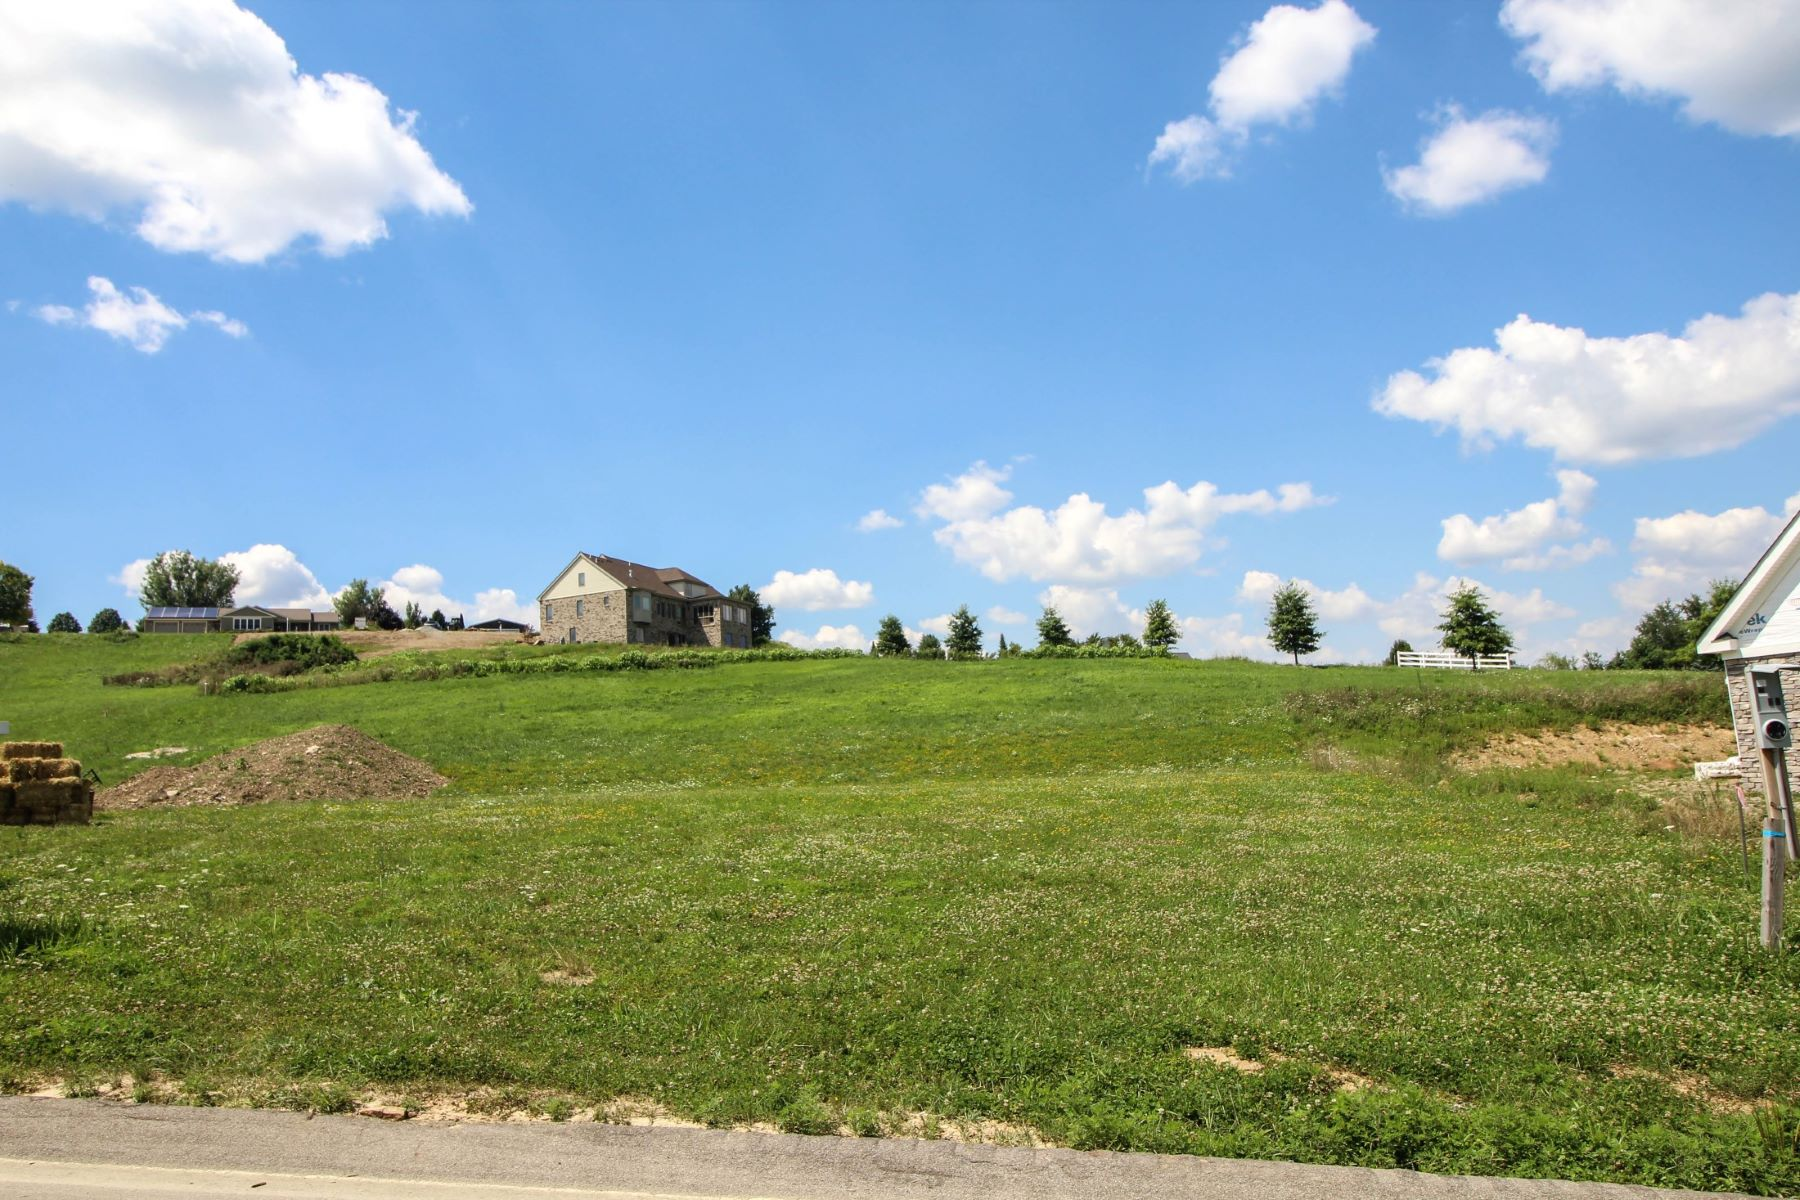 Land for Sale at Piatt Estates Home Site - Lot 108R 103 Piatt Estates Drive Lot 108R Washington, Pennsylvania 15301 United States